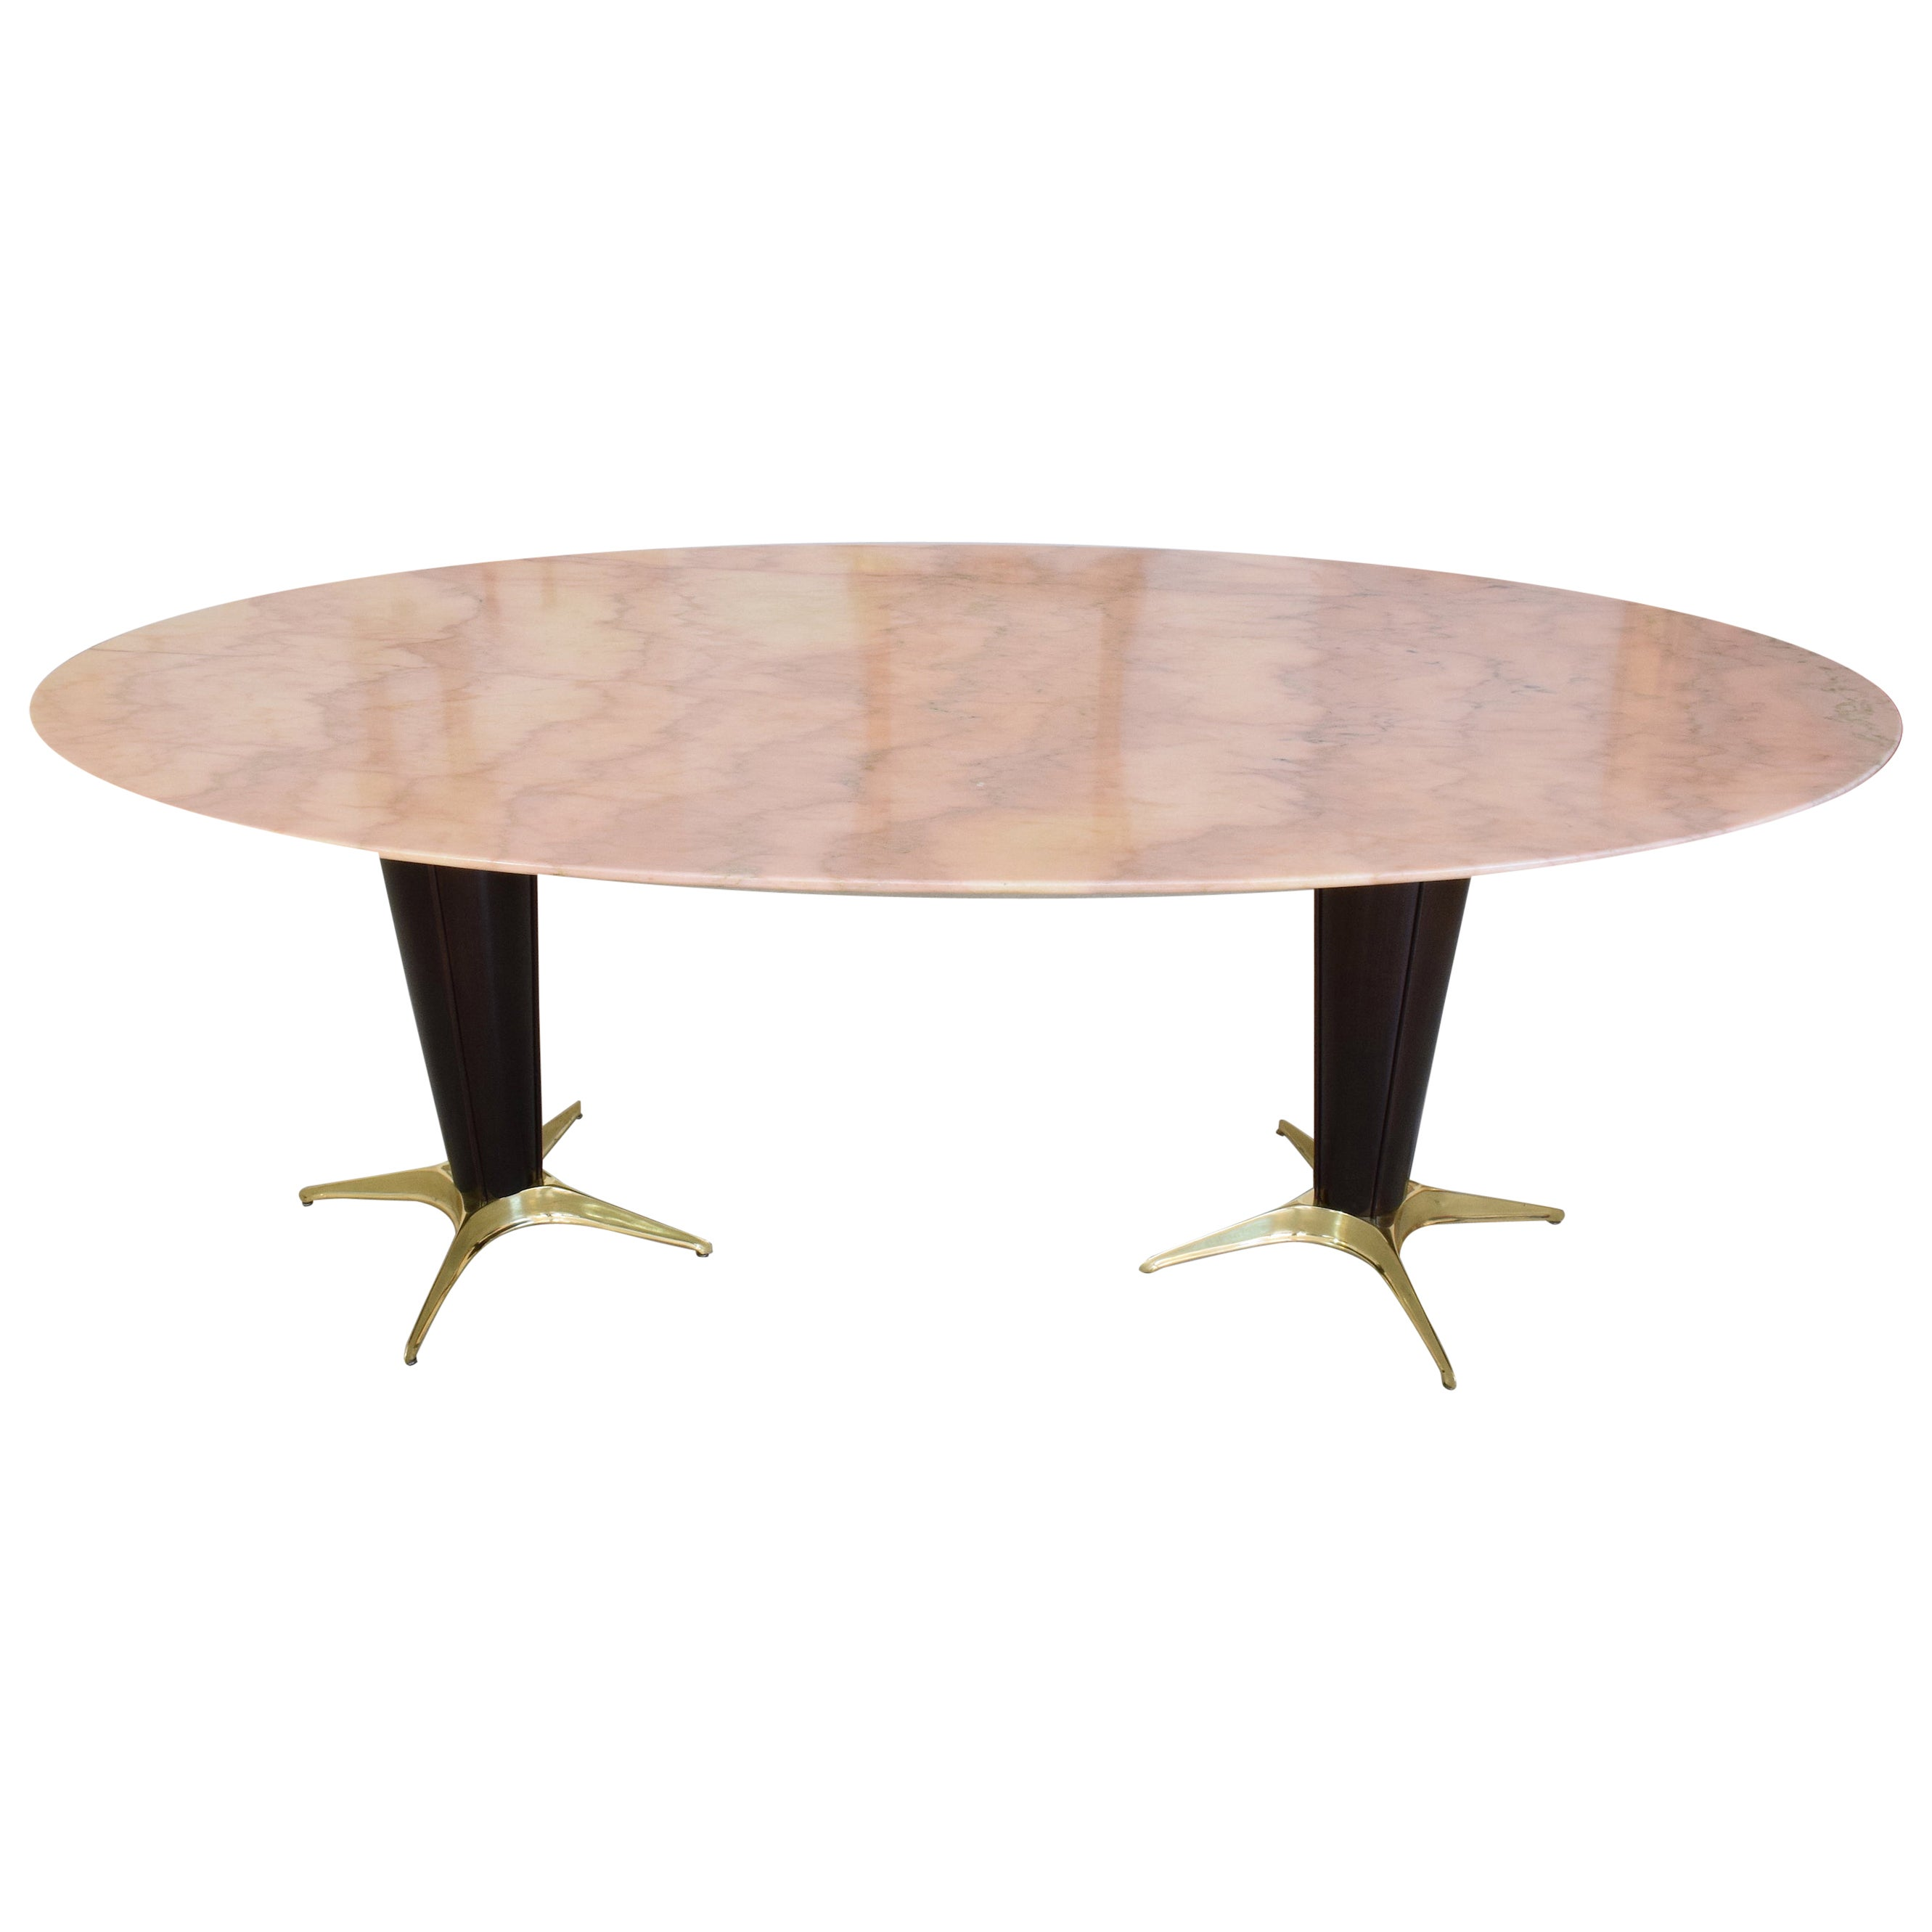 Italian Midcentury Oval Marble Dining Table, 1950s